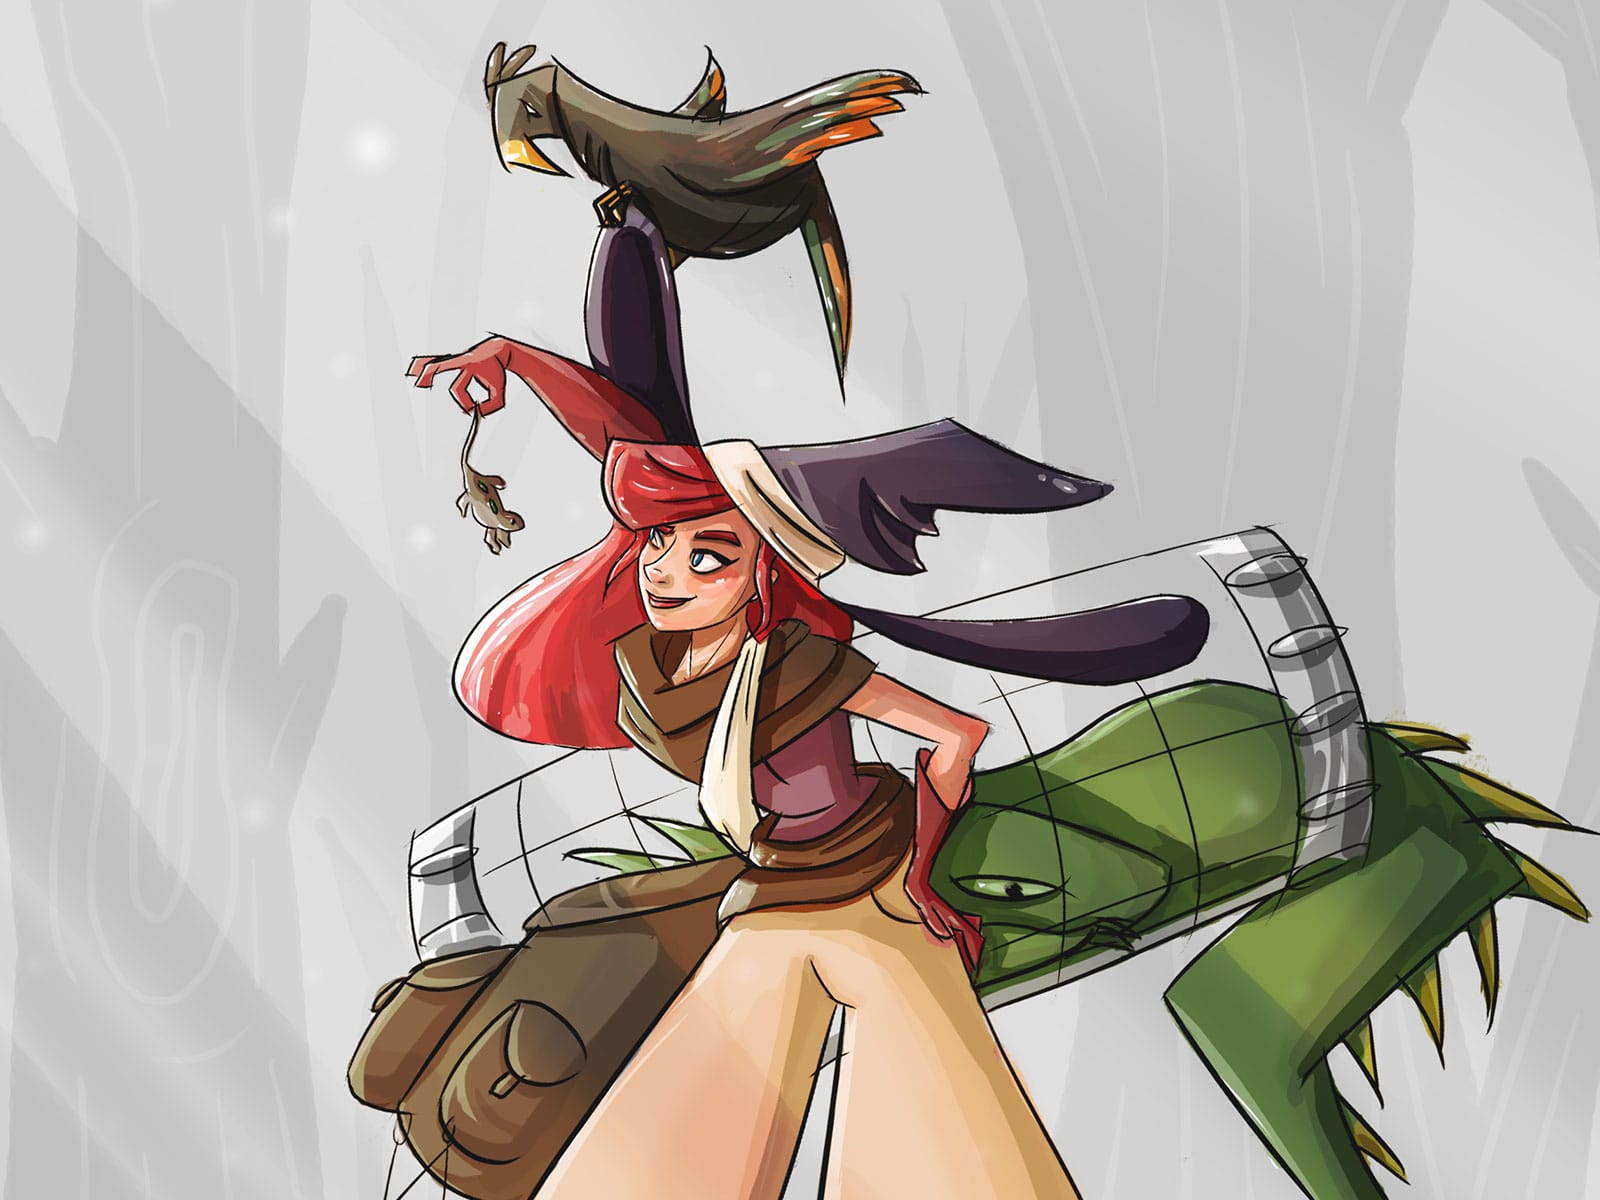 A red-haired woman in a purple hat with a bird on top holding a frog